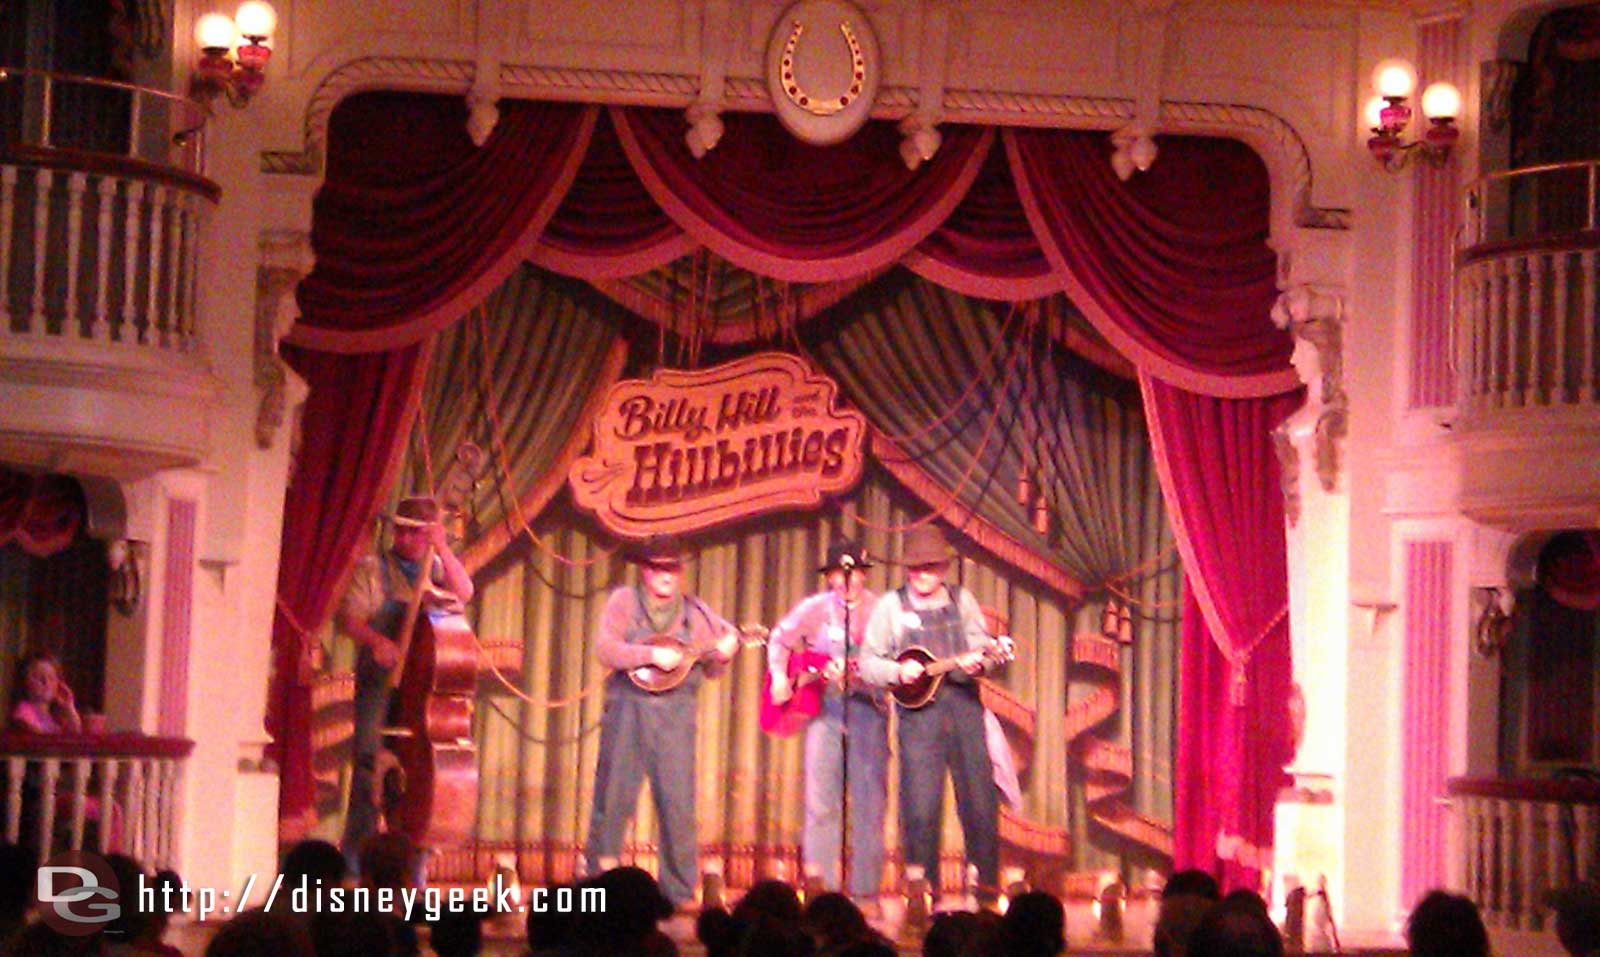 The Billies are back inside the Golden Horseshoe, also the menu has gone back to corn dogs, chicken nuggets, etc